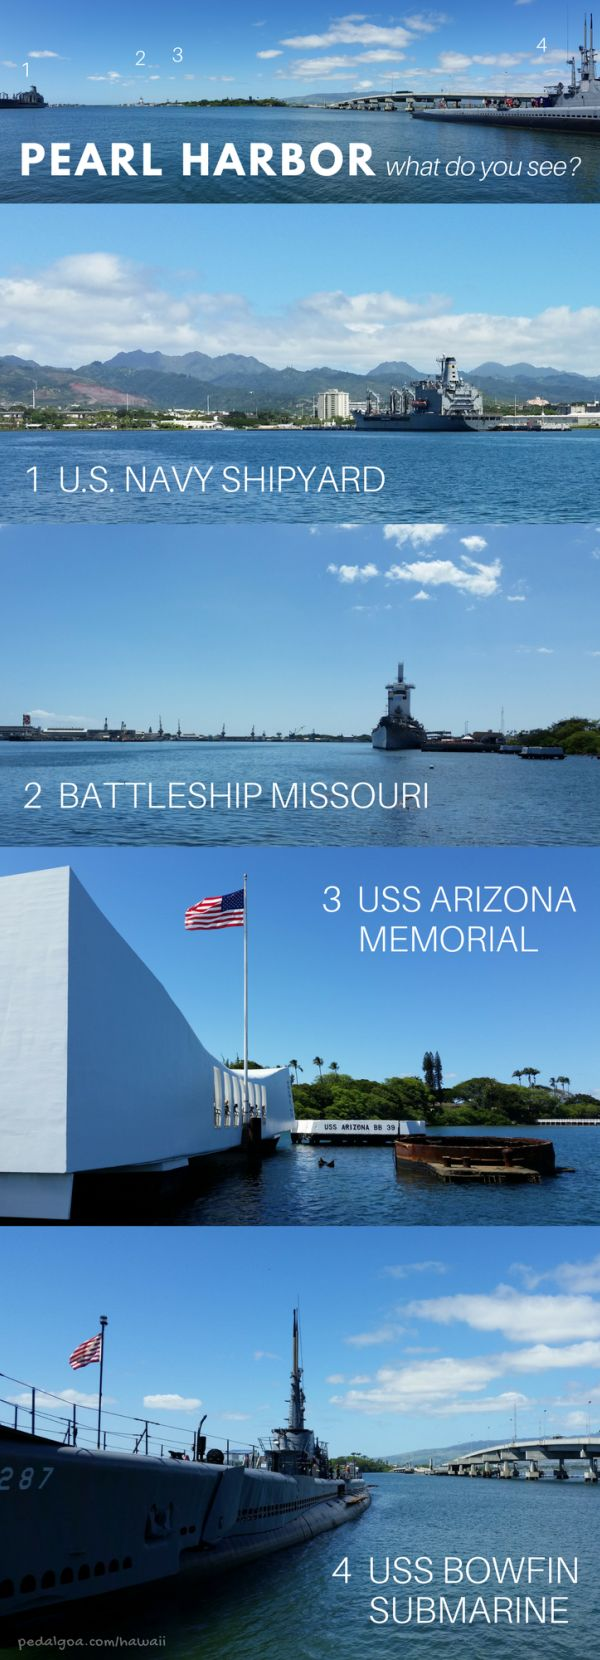 Pearl Harbor pictures: USS Arizona Memorial, Battleship Missouri, US Navy Shipyard, USS Bowfin Submarine. The Pearl Harbor memorial in Hawaii is a top travel bucket list of things to do on Oahu. Better understand facts of what propelled the US into World War II. As a national monument, it's a sort of national park in Hawaii! For culture and history activities near Honolulu, make a remembrance of the Pearl Harbor attack at this beautiful outdoor museum a part of your Hawaii vacation!